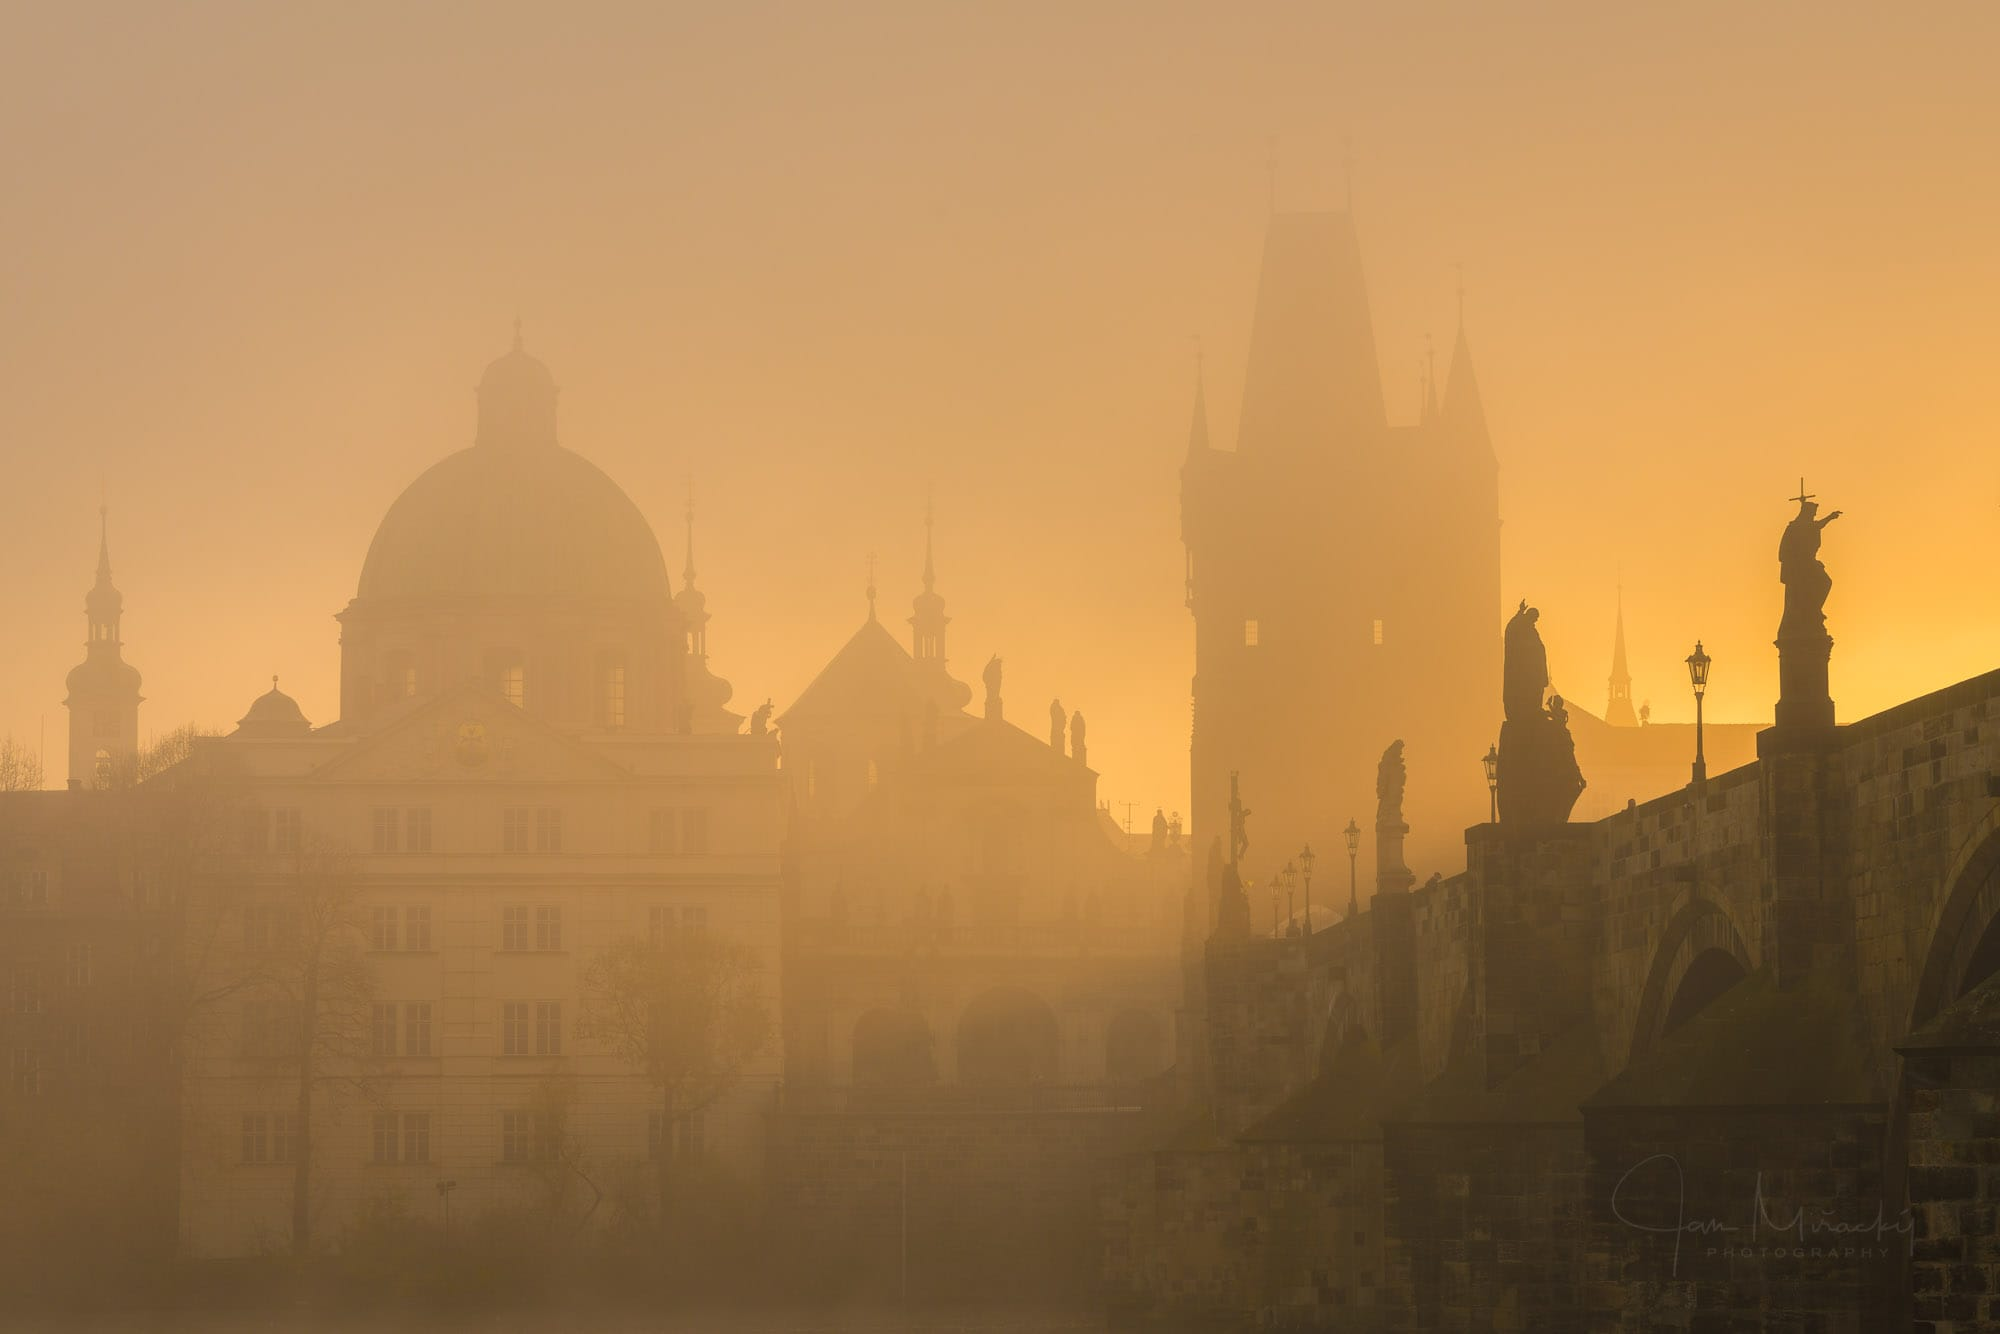 Sunrise silhouettes at Charles bridge